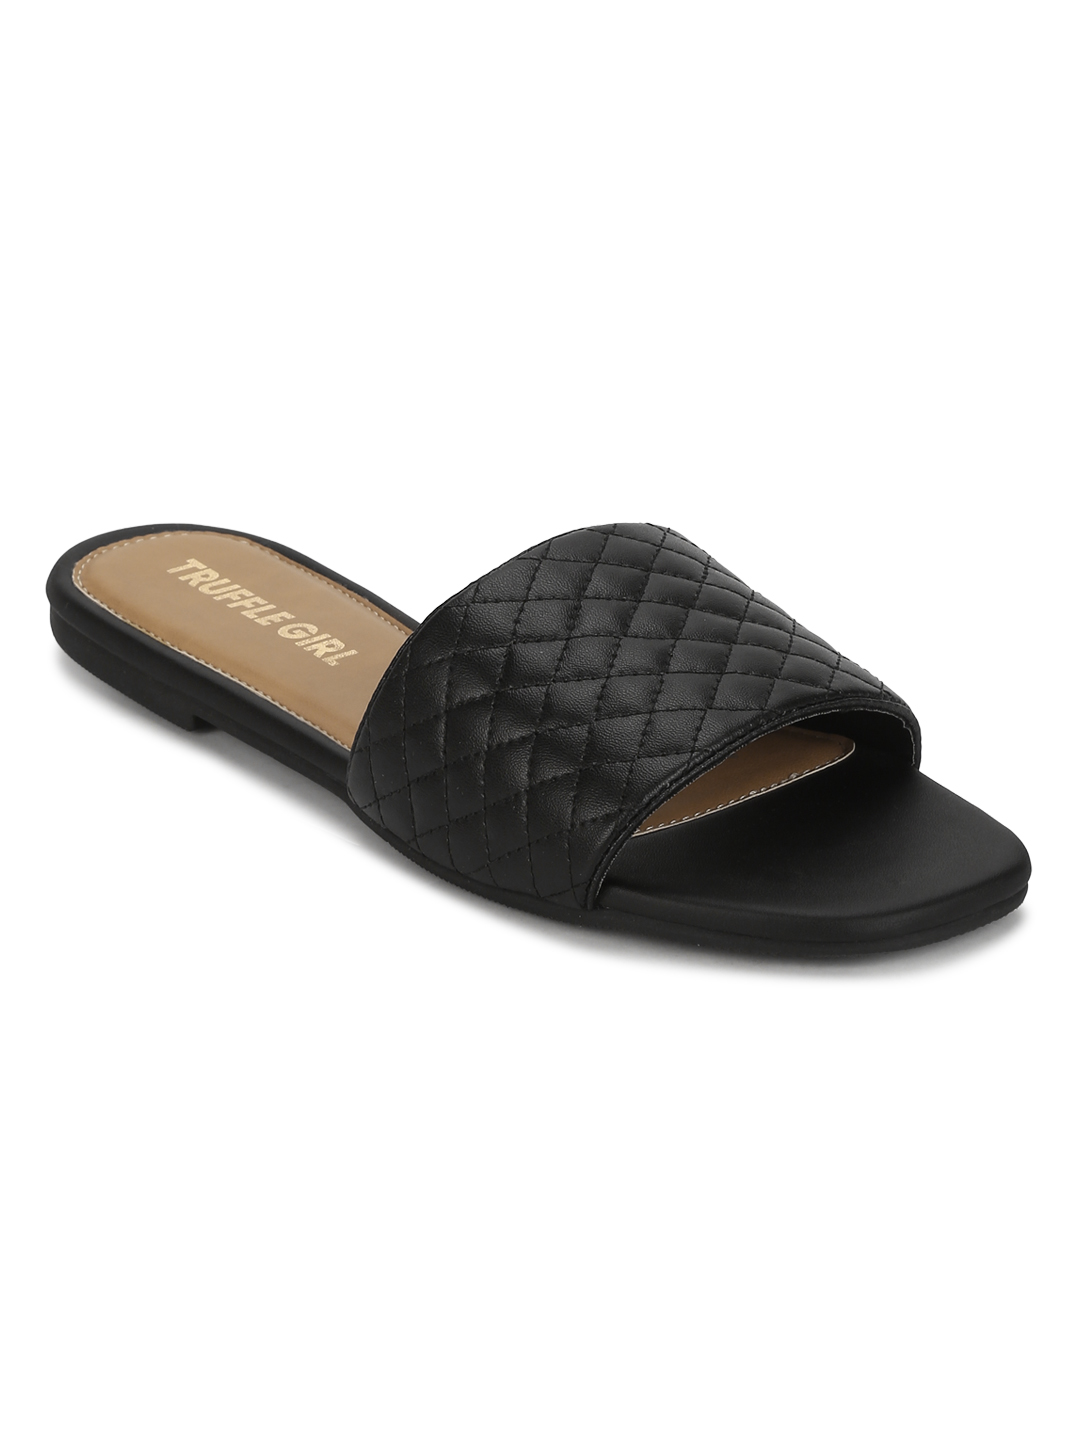 Truffle Collection | Black Quilted PU Slide on Flat Sandals